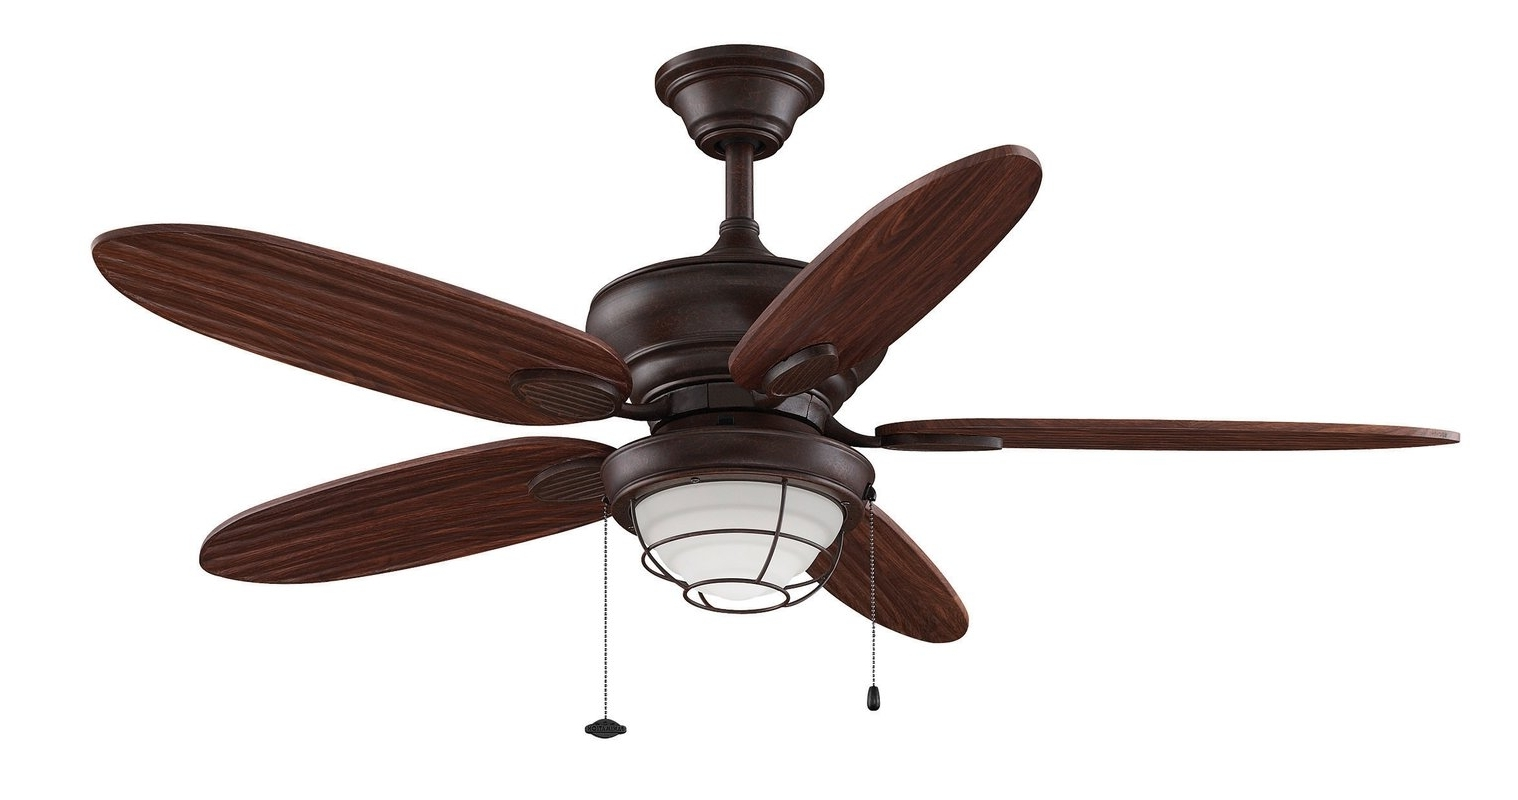 Outdoor Ceiling Fans C Wayfair Ceiling Fans With Lights Simple Intended For Most Current Wayfair Outdoor Ceiling Fans With Lights (View 12 of 20)